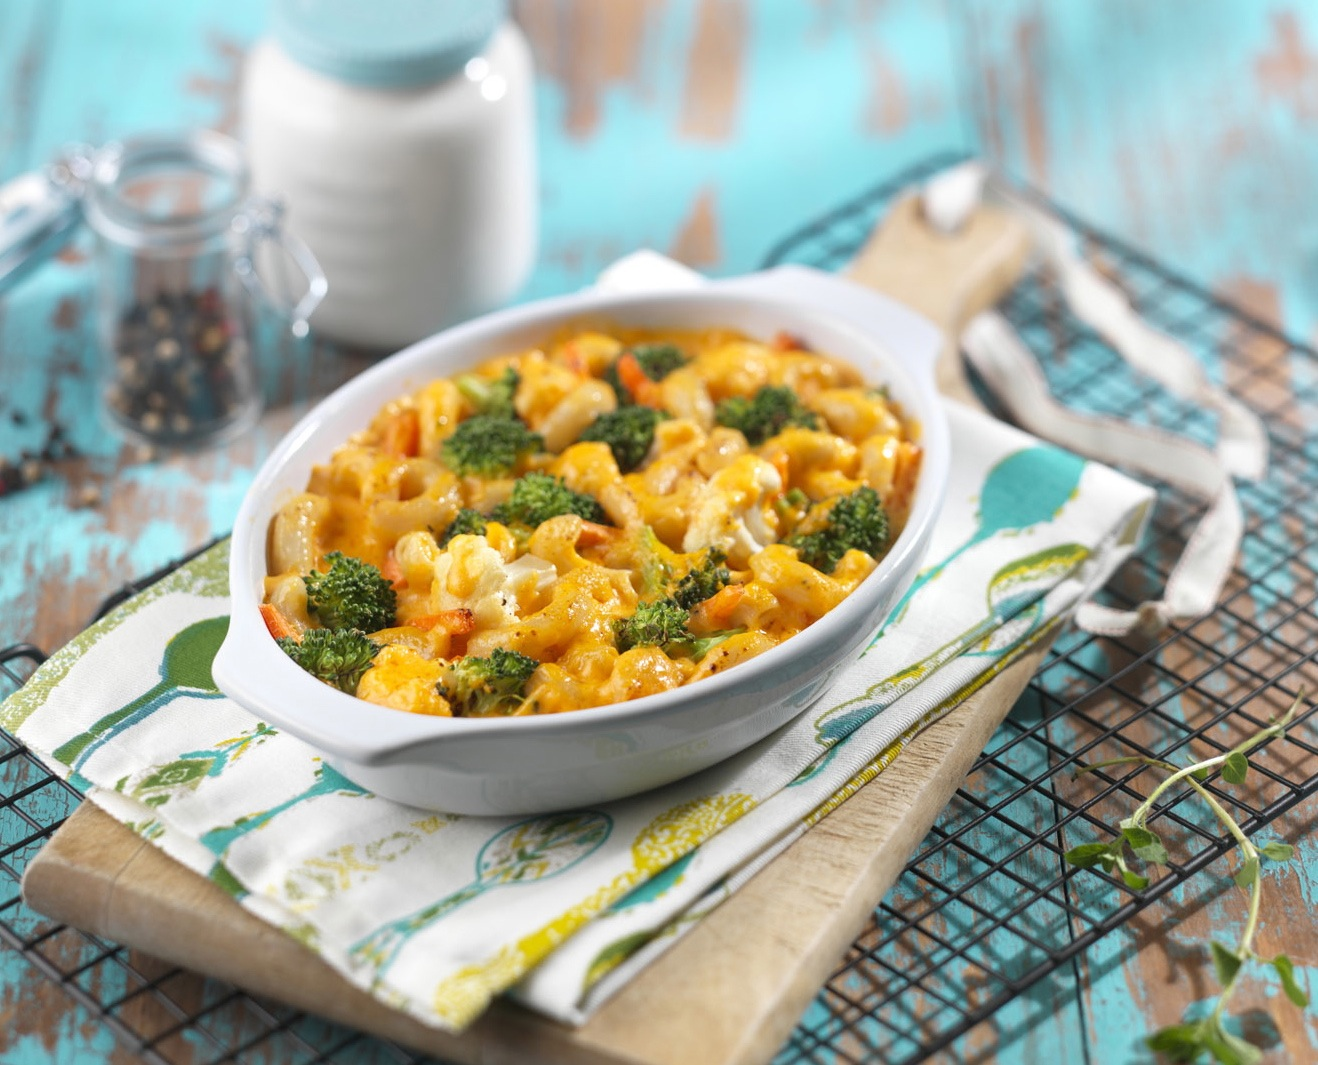 Mac & Cheese with Vegetables